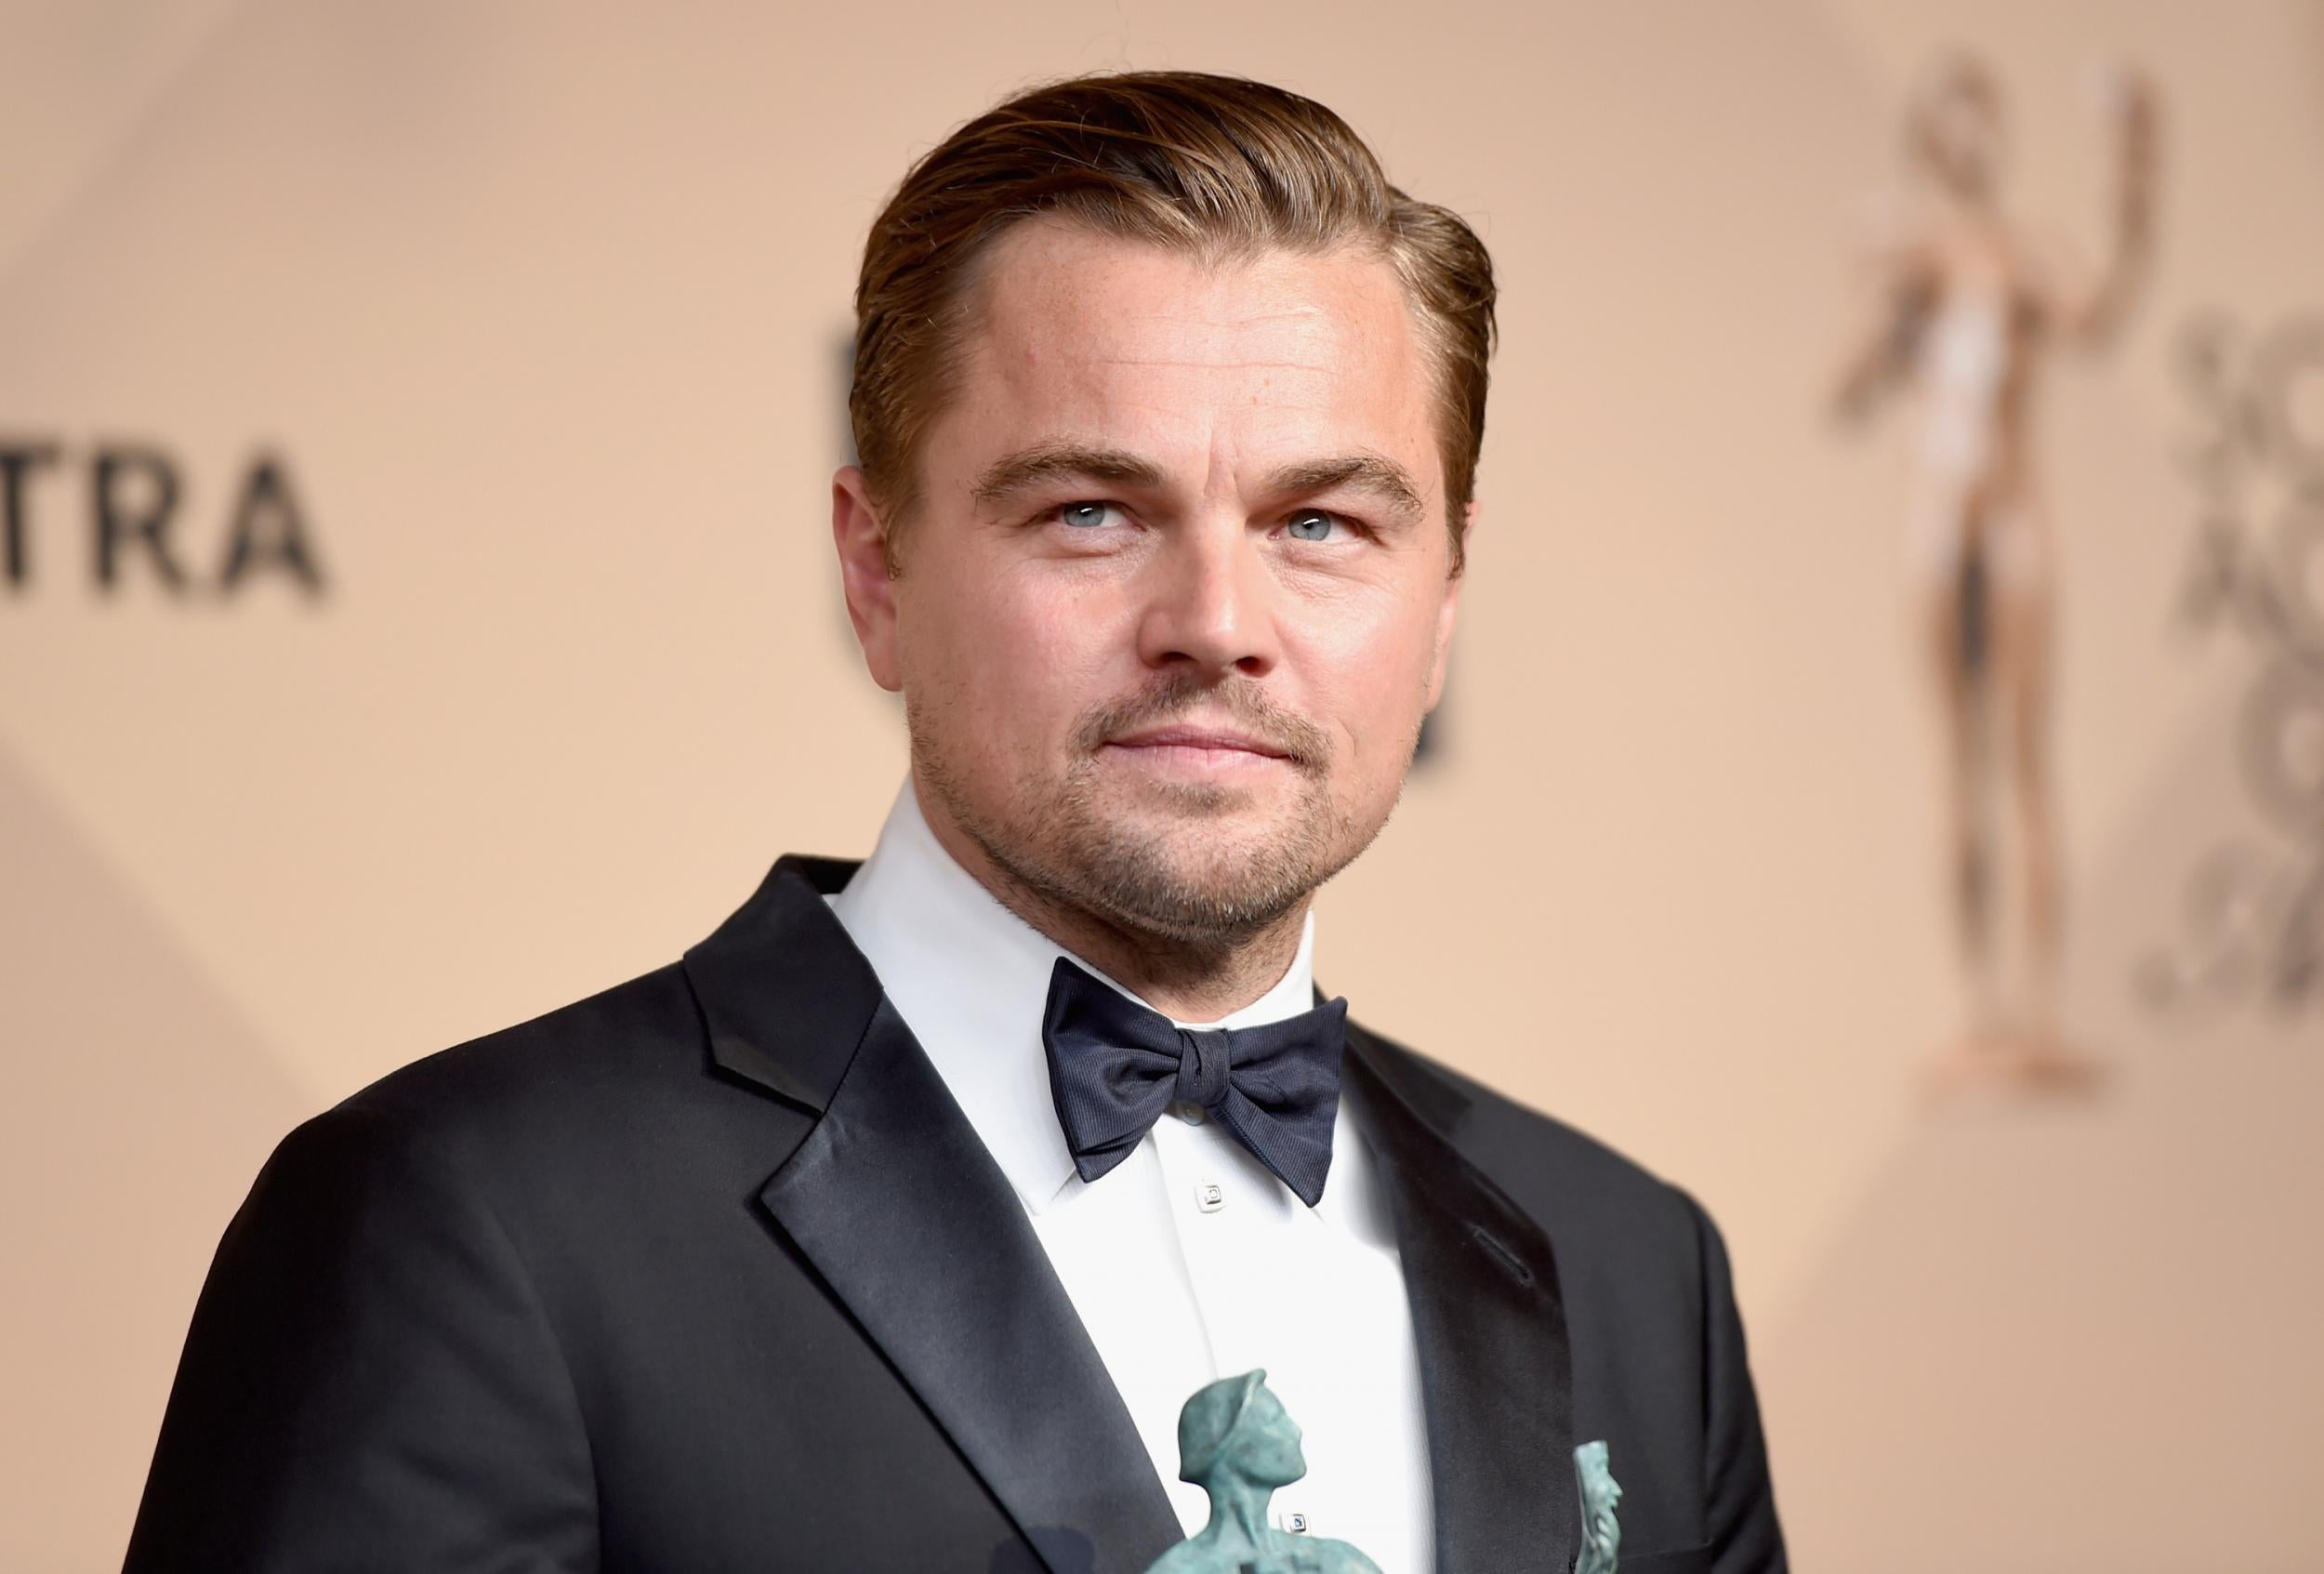 Leonardo DiCaprio fans in Siberia are melting down their jewellery to make the actor an Oscar for The Revenant